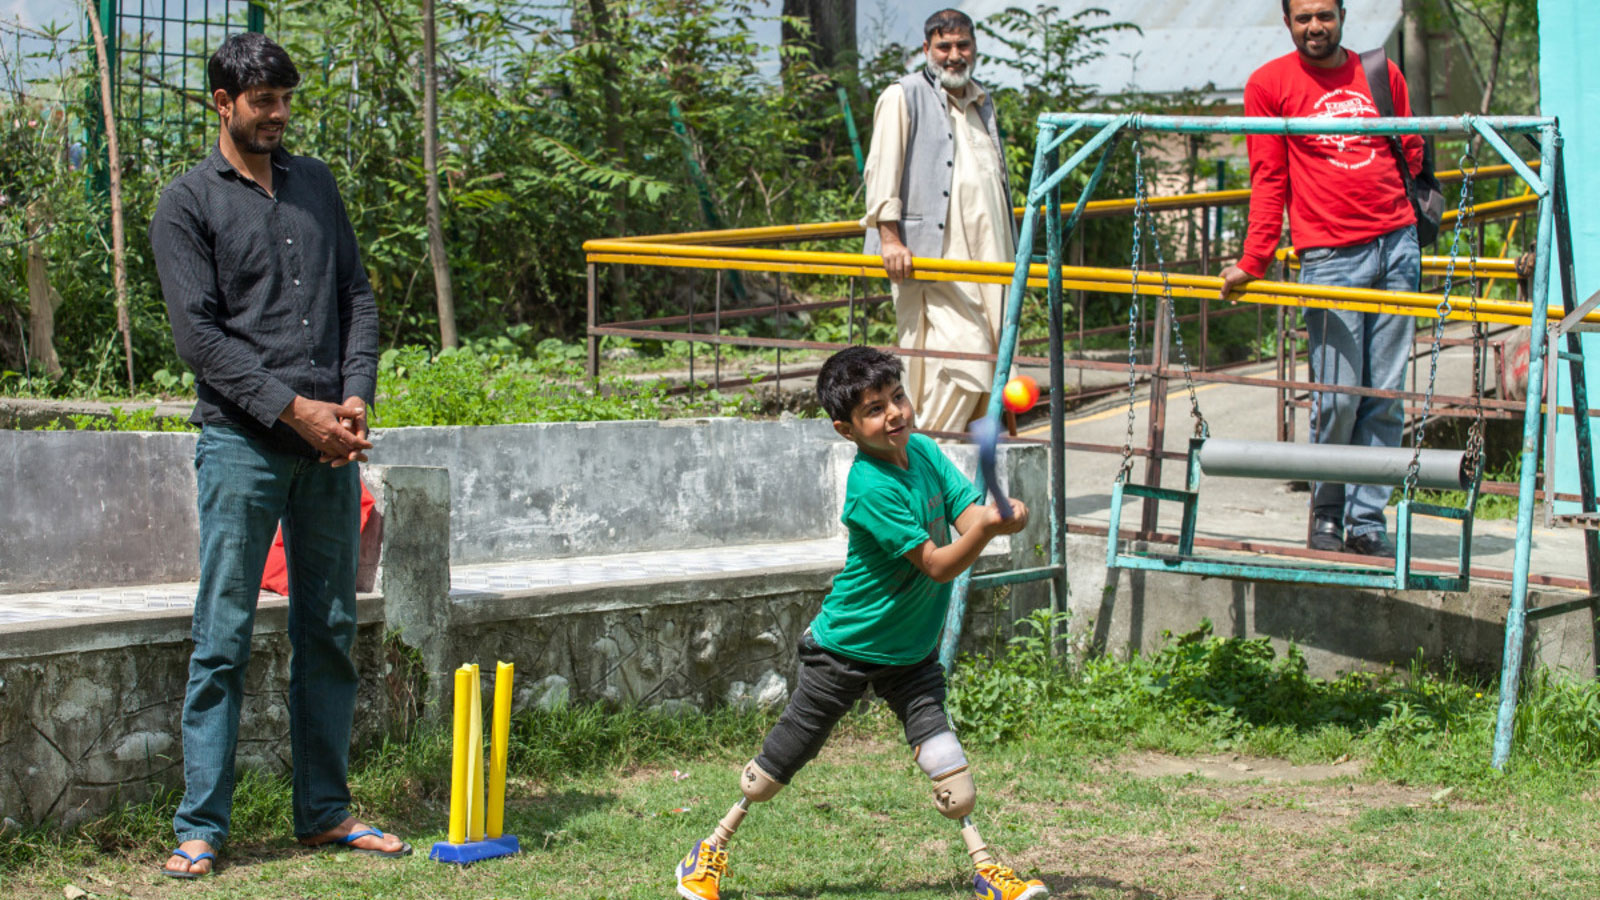 Fayaz who lost both of his legs from an explosive remnant of war in India plays cricket with his friends.